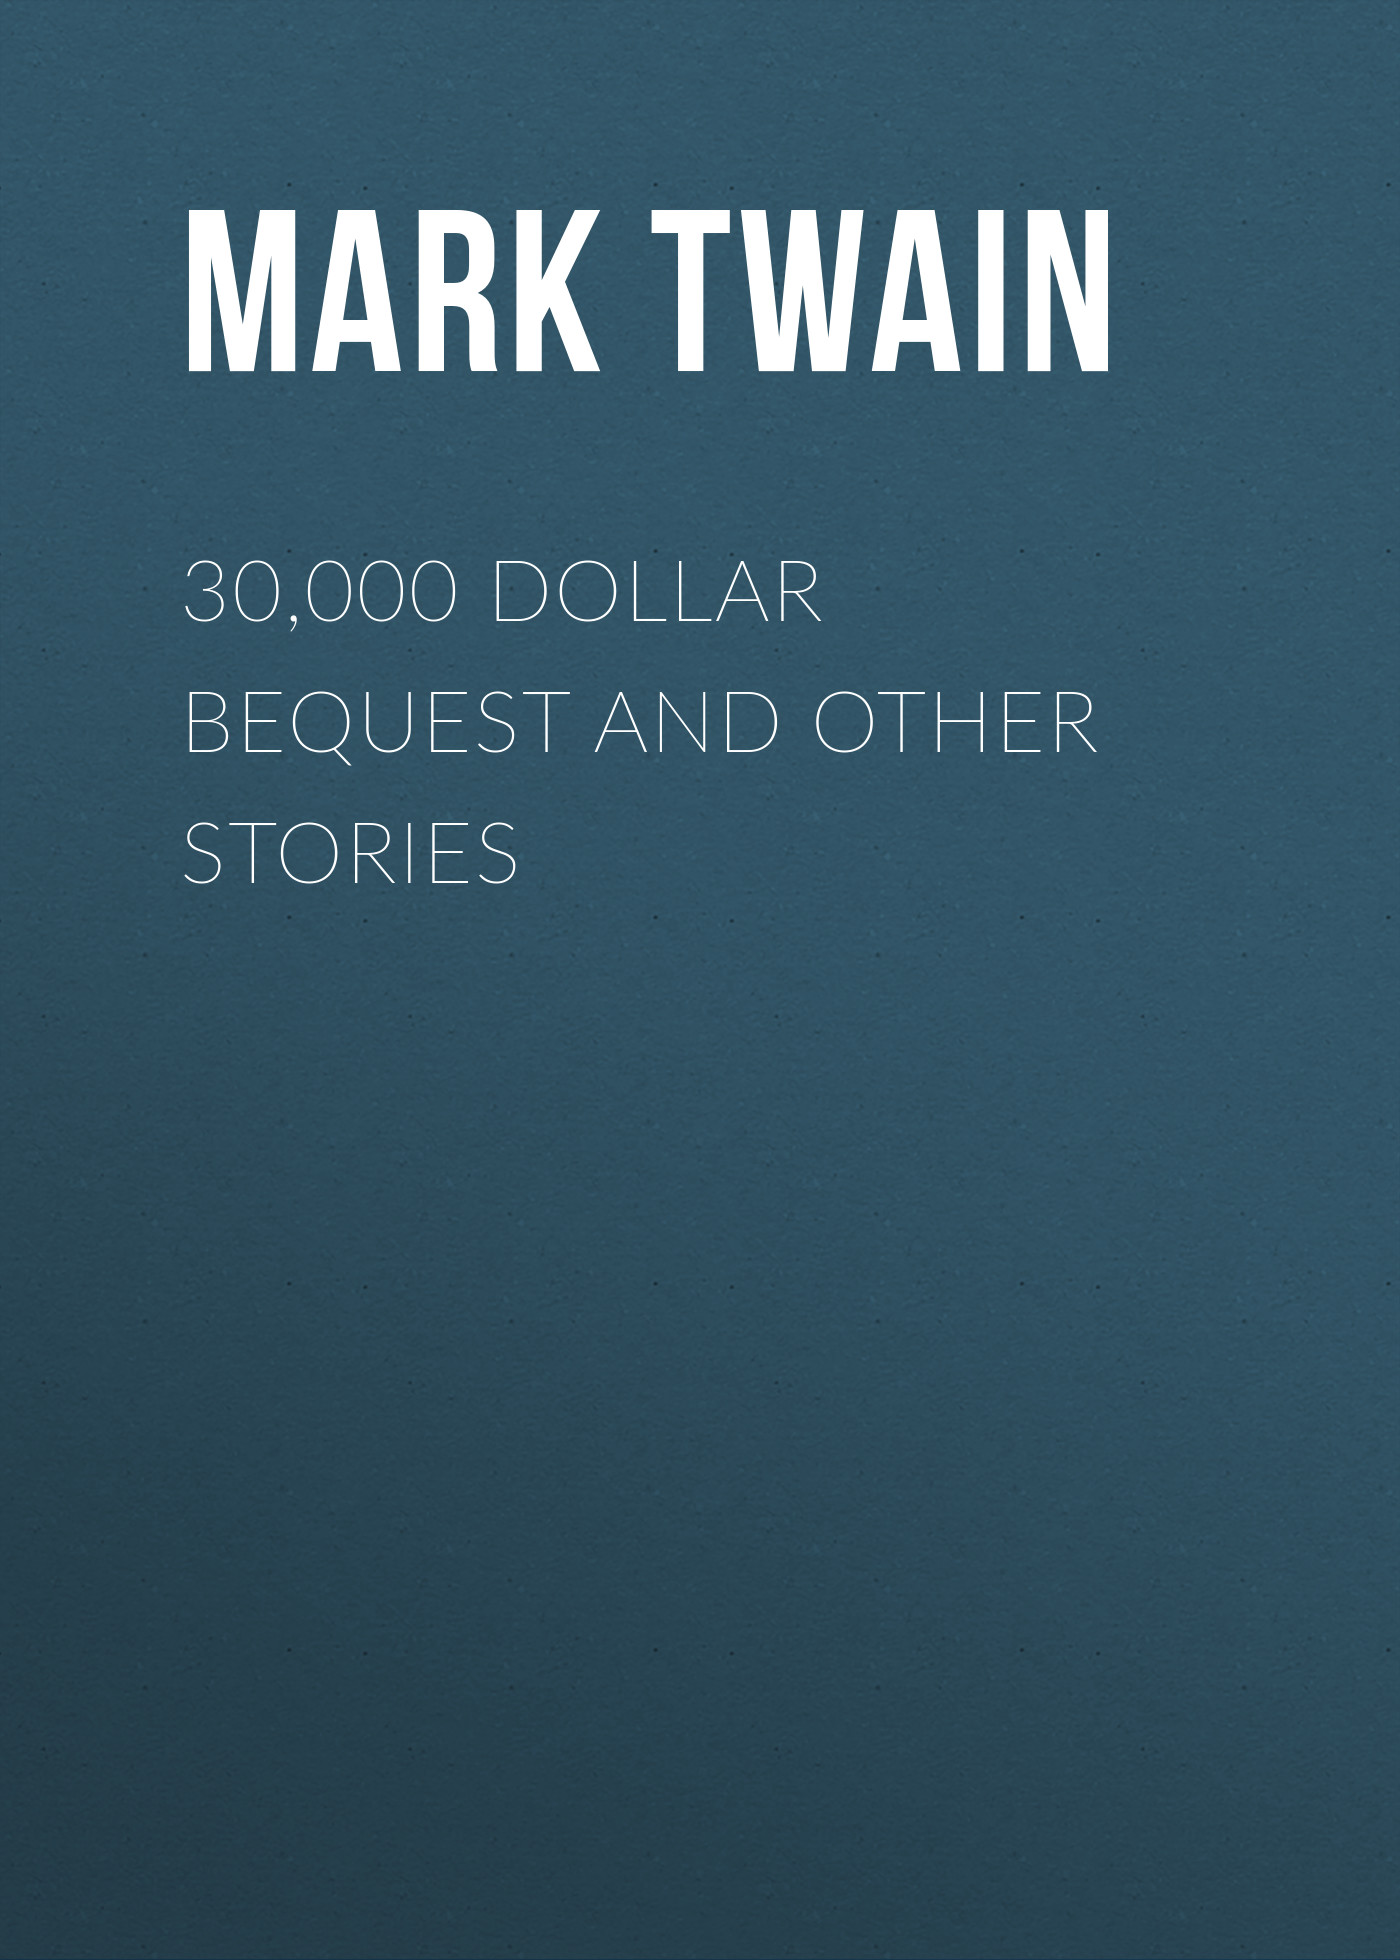 Марк Твен 30,000 Dollar Bequest and Other Stories to build a fire and other stories